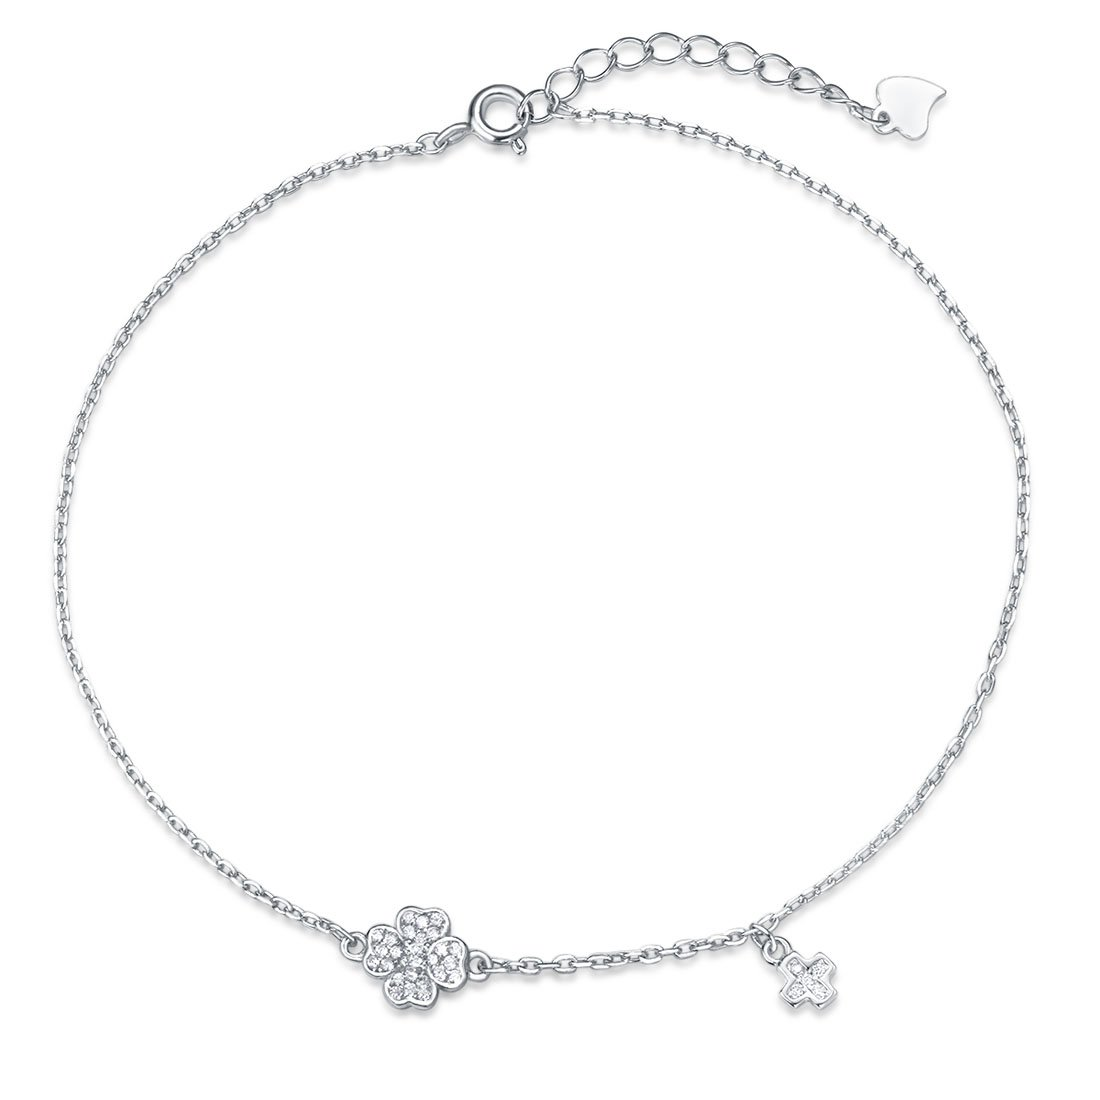 Agvana Sterling Silver Cubic Zirconia CZ Cross Four Leaf Clover Beach Anklet Bracelet for Women Girls 8.7''+1.2''